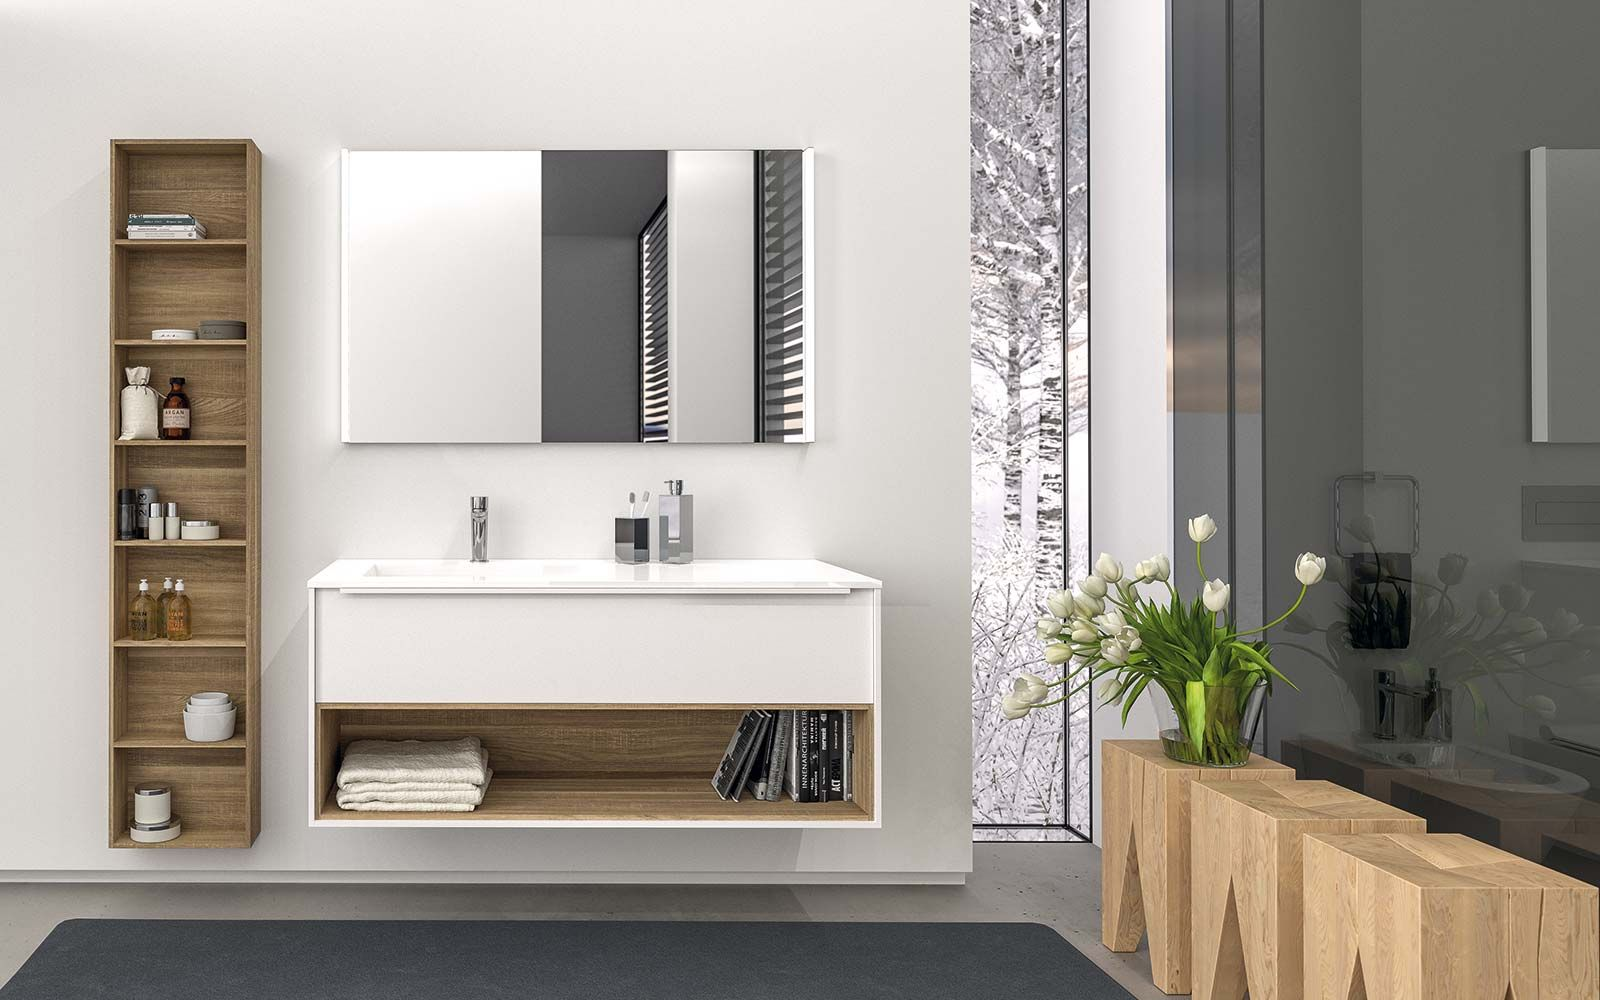 Berloni Bagno - bathroom furnishings | SPECS // Interior Casework ...